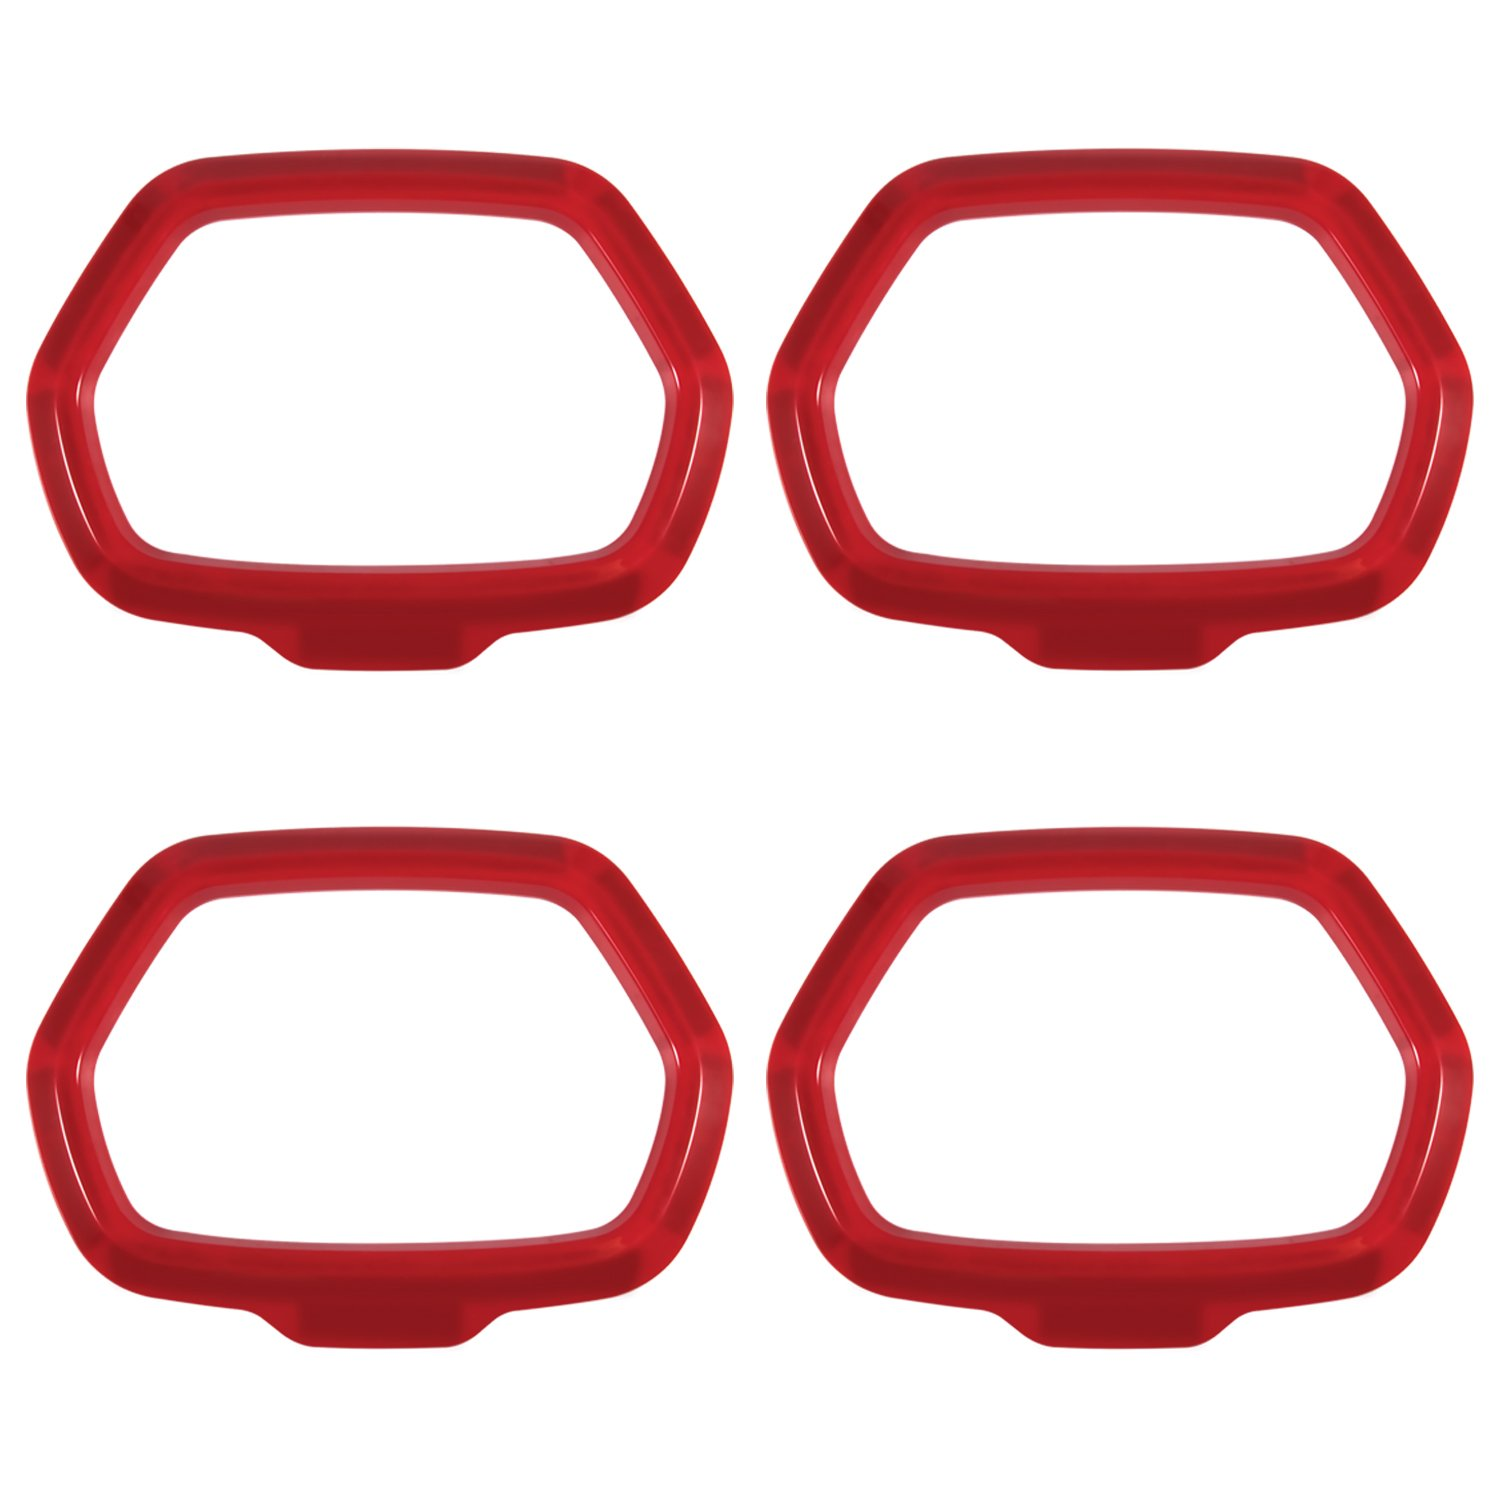 Yoursme Red Interior Door Sound Speaker Cover 4 Piece ABS Audio Ring Radio Outlet Frame Trim for 2015 2016 2017 2018 Jeep Renegade